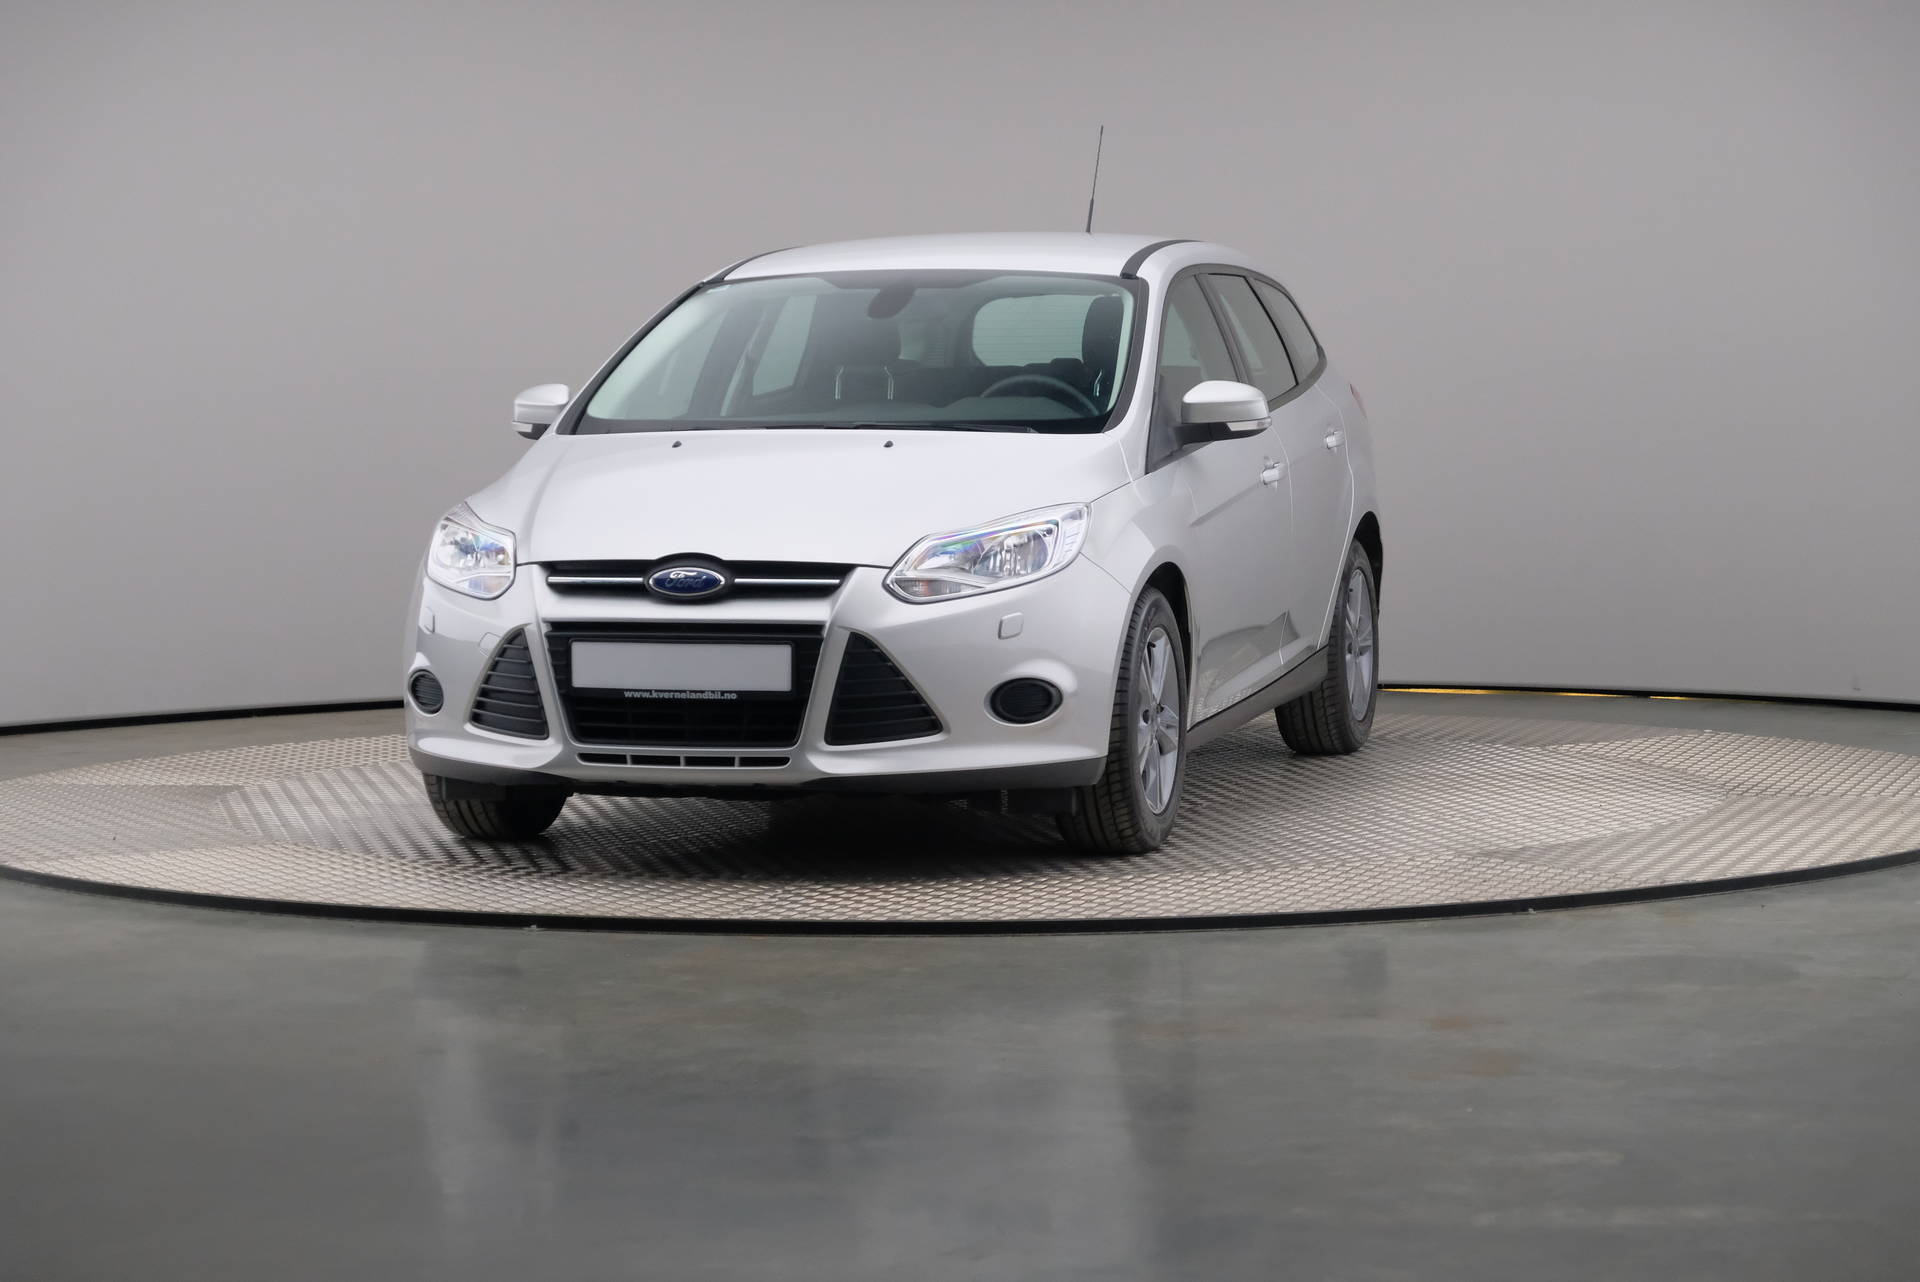 Ford Focus 1.1 100HK Trend PDC/BT, 360-image33